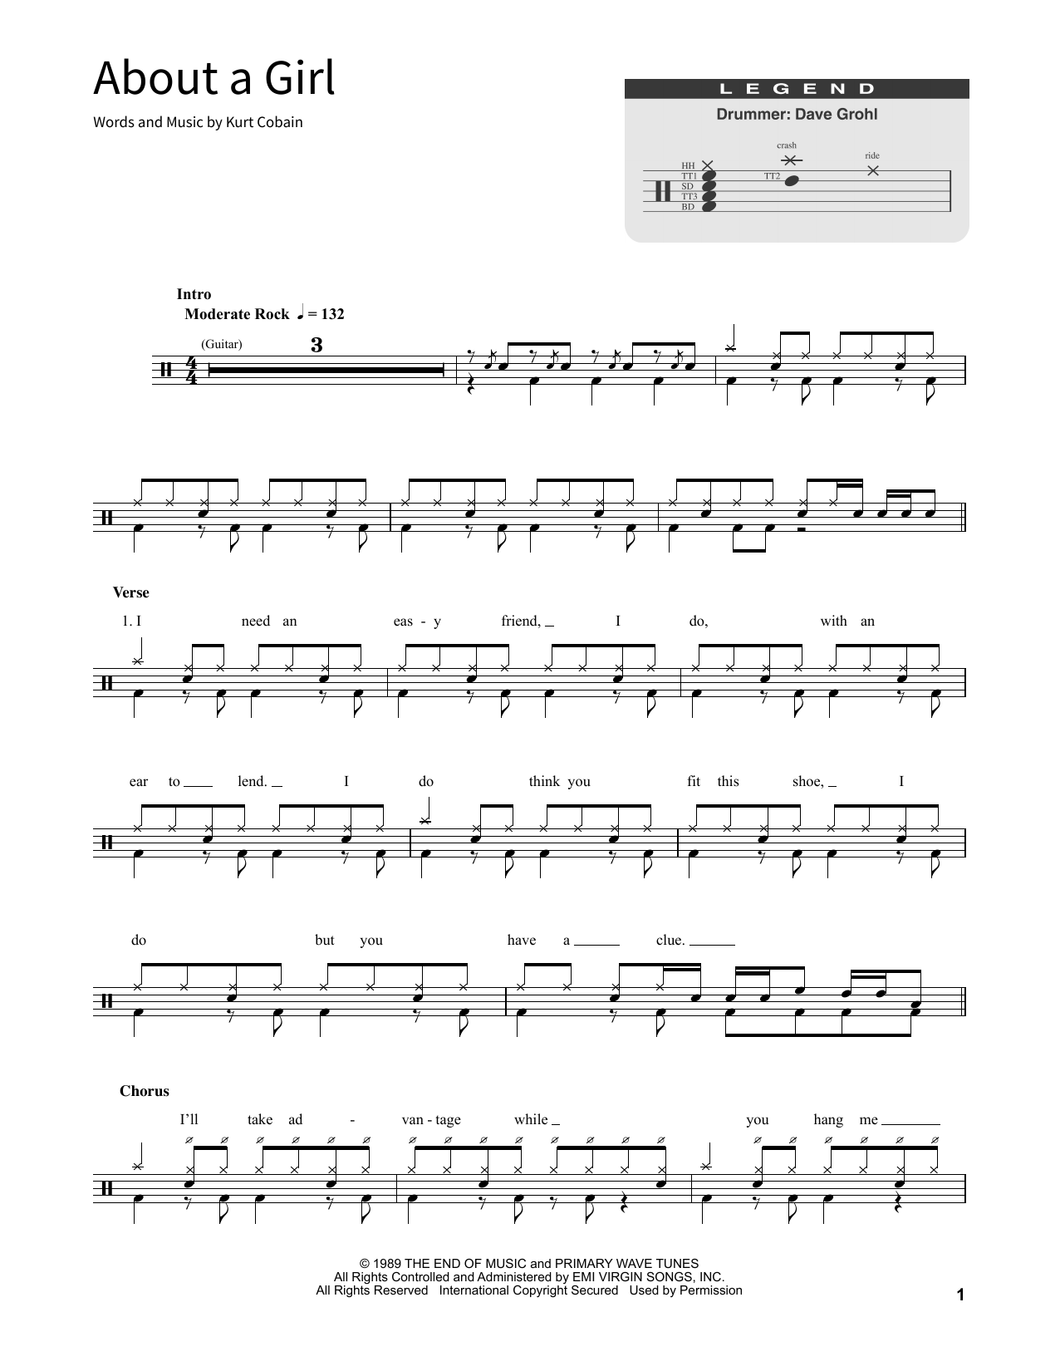 About A Girl - Nirvana - Full Drum Transcription / Drum Sheet Music - SheetMusicDirect SORD